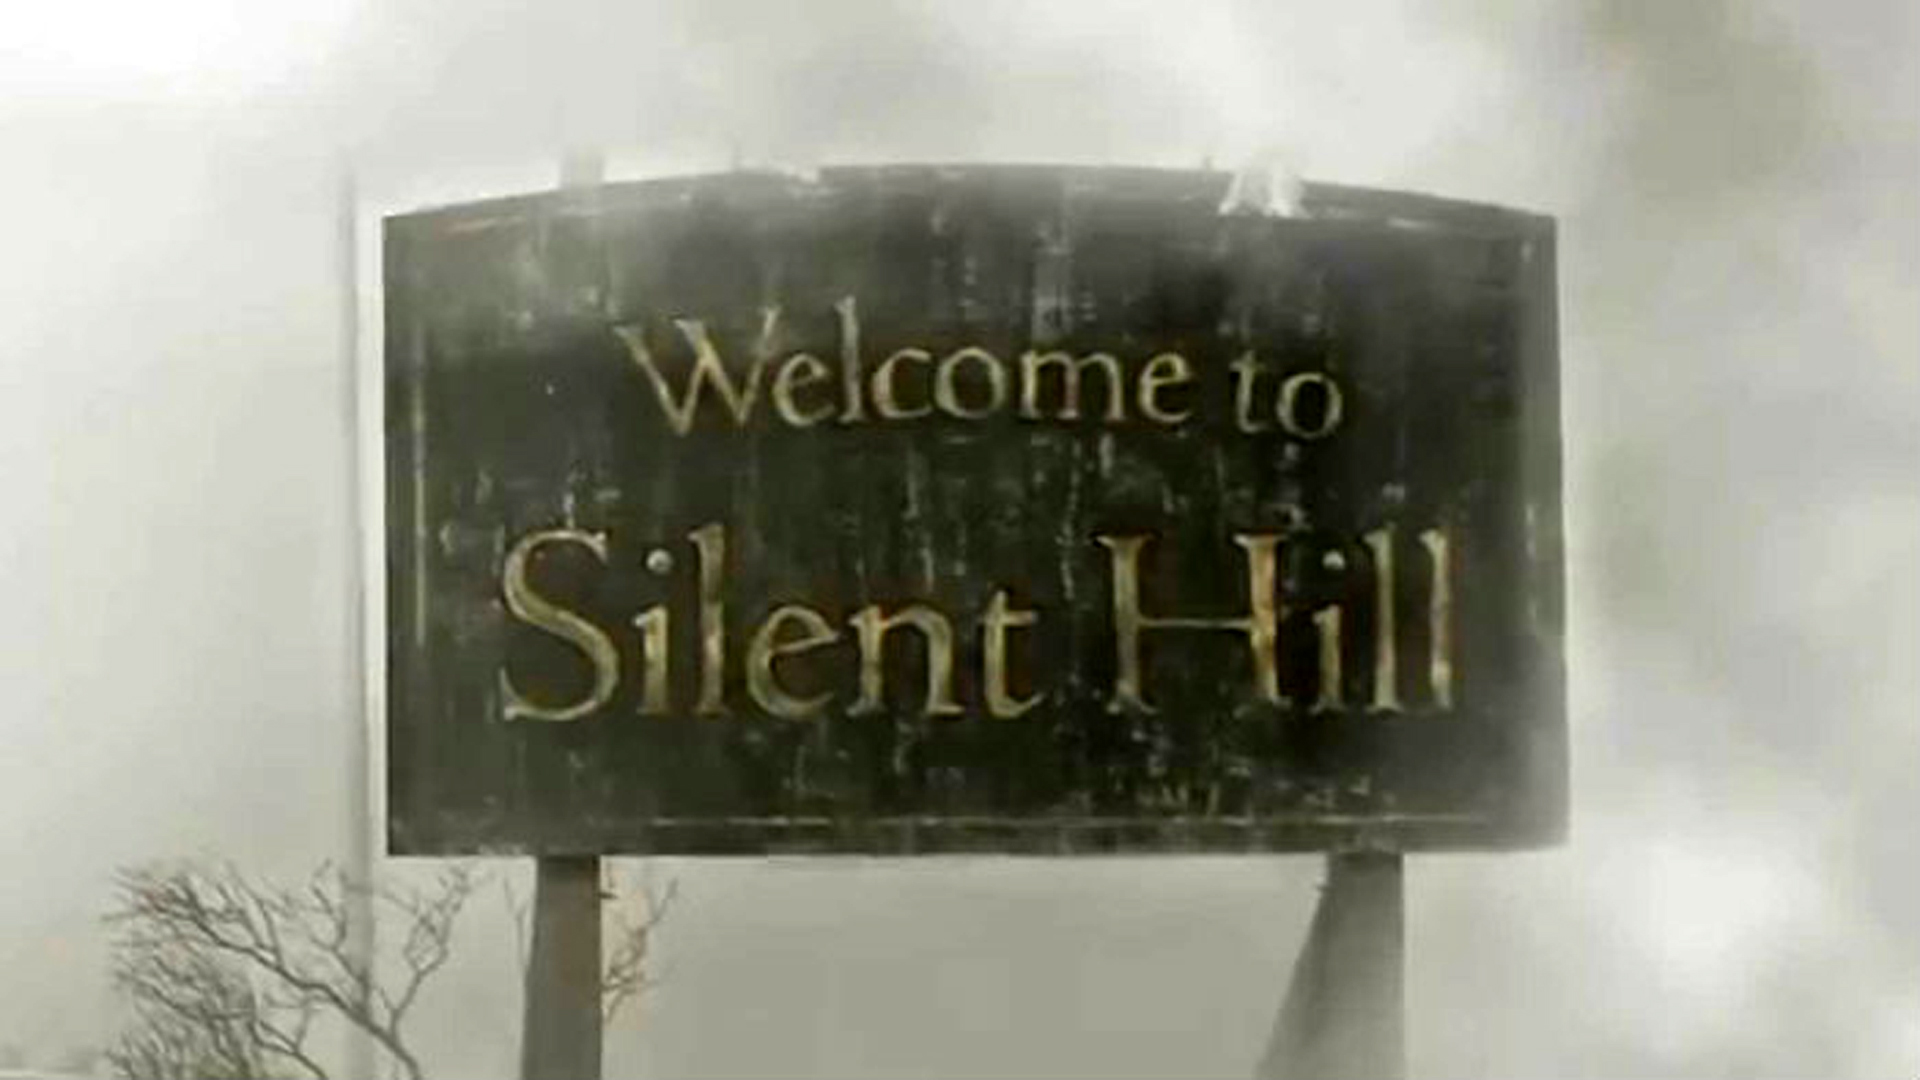 Bloober Team denies Silent Hill rumours while not denying it may be doing Silent Hill